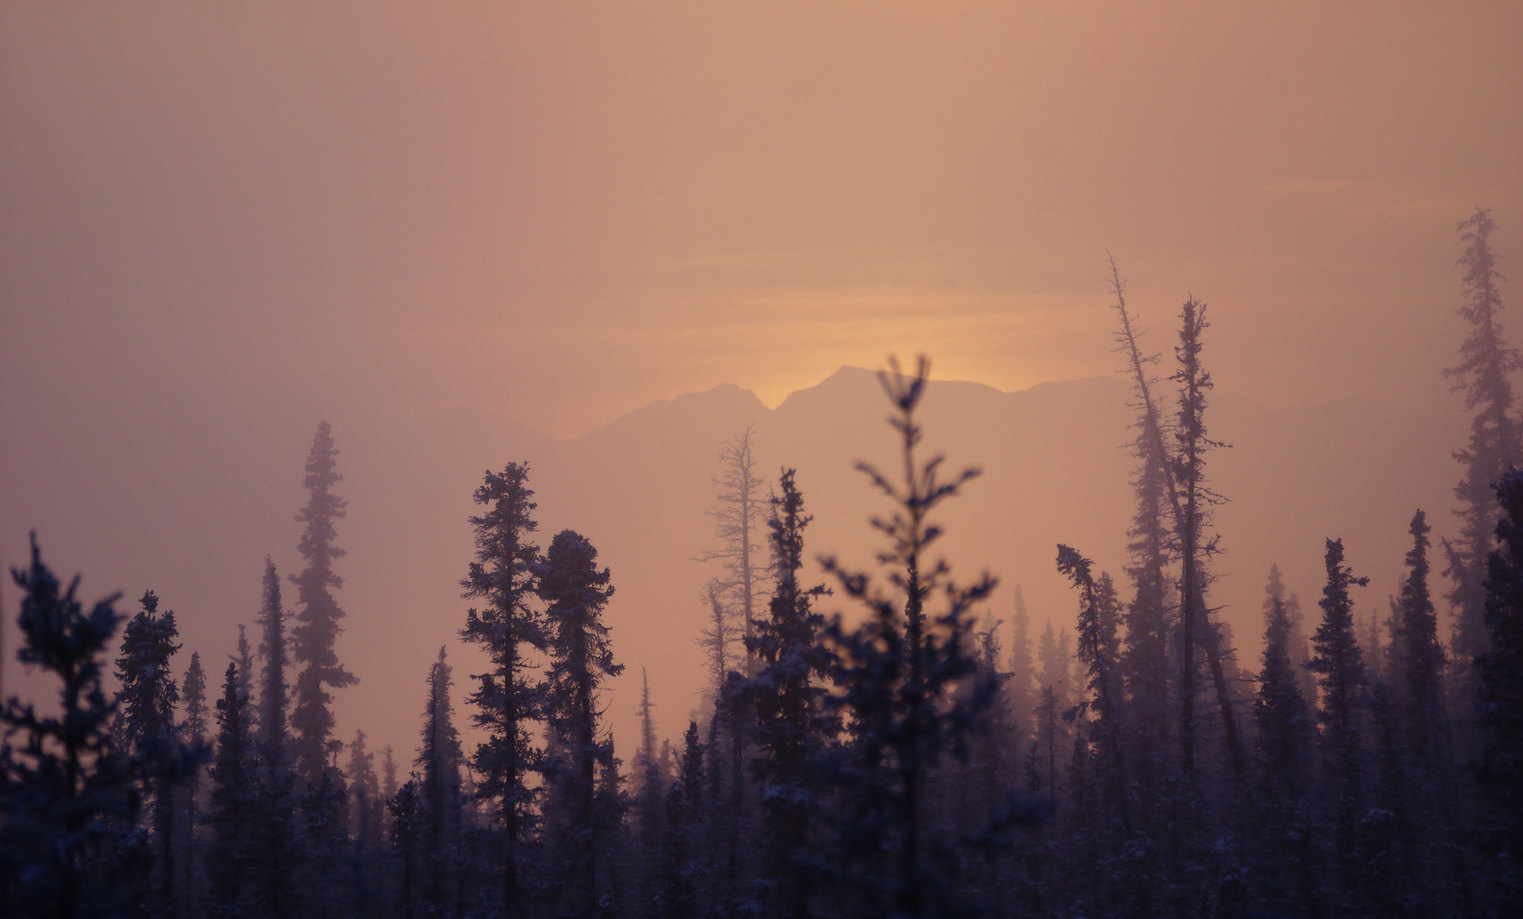 Boreal forests such as this one in Alaska are projected to enter into a different climatic zone from rising temperatures due to climate change and fare worse in the future. – Image Credit: akgypsy37/flickr , CC BY-NC-ND